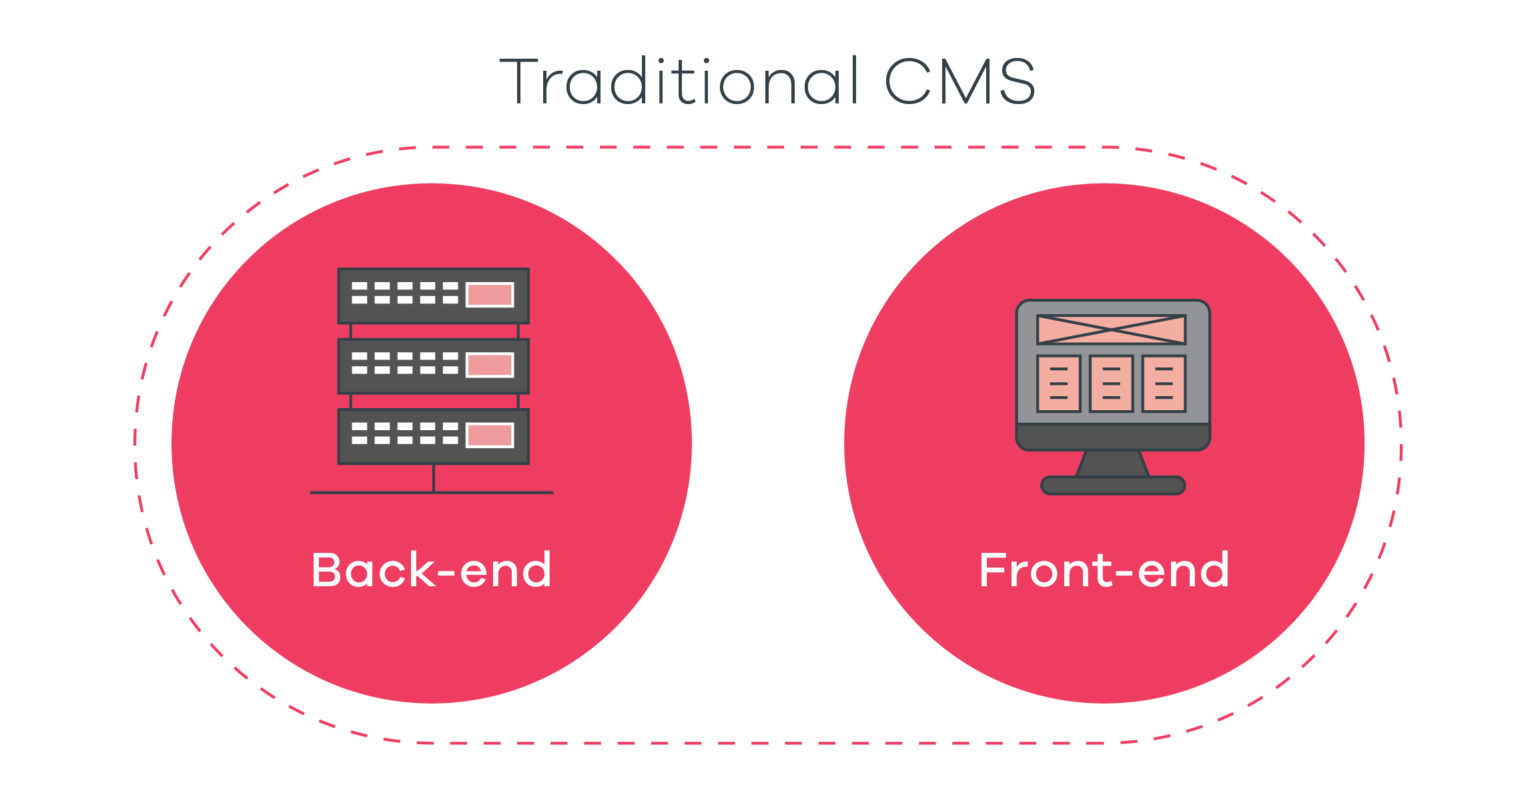 Traditional CMS diagram